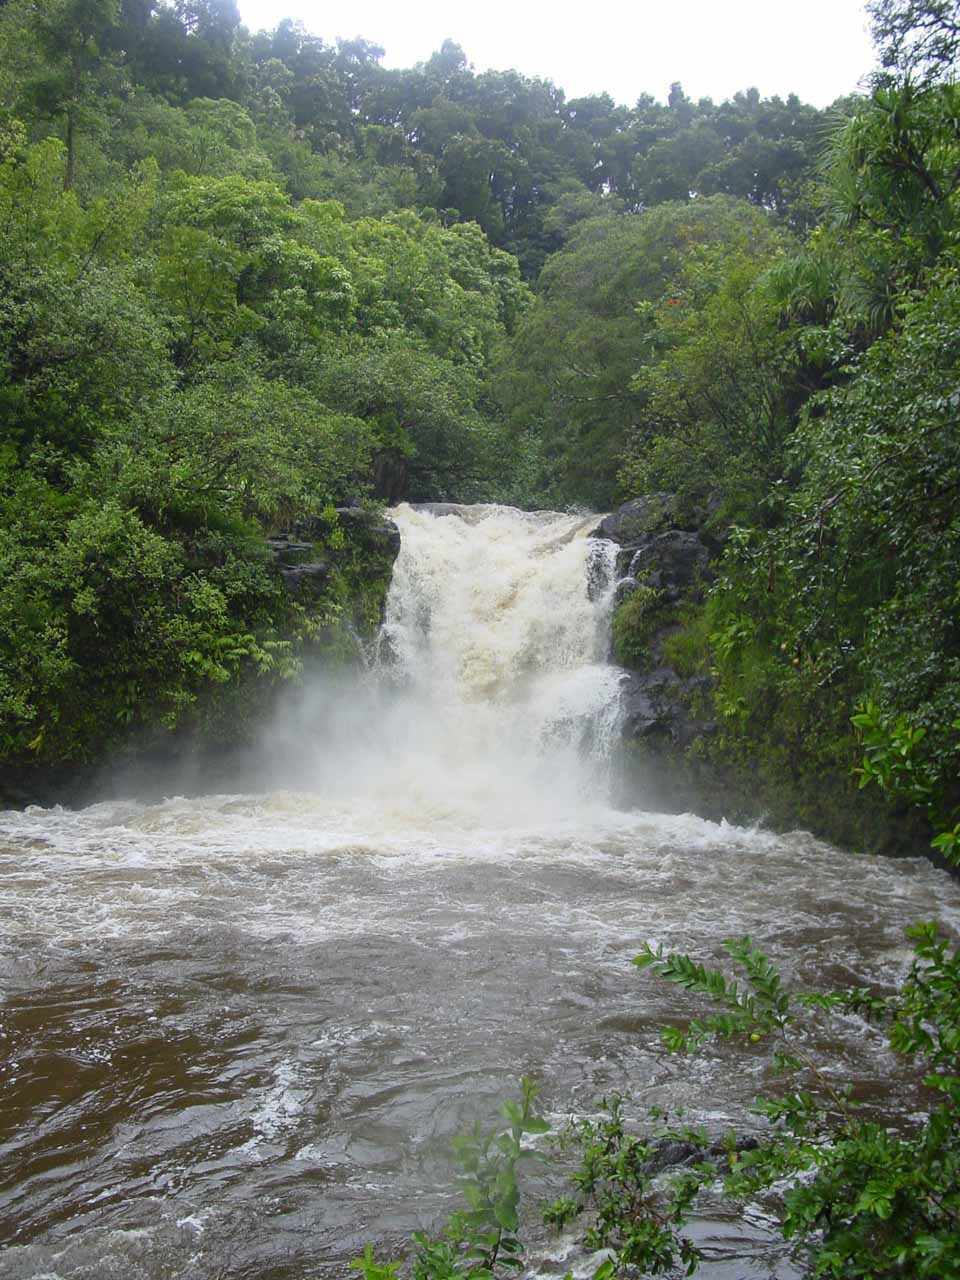 Still another look at the Upper Puohokamoa Falls in flood